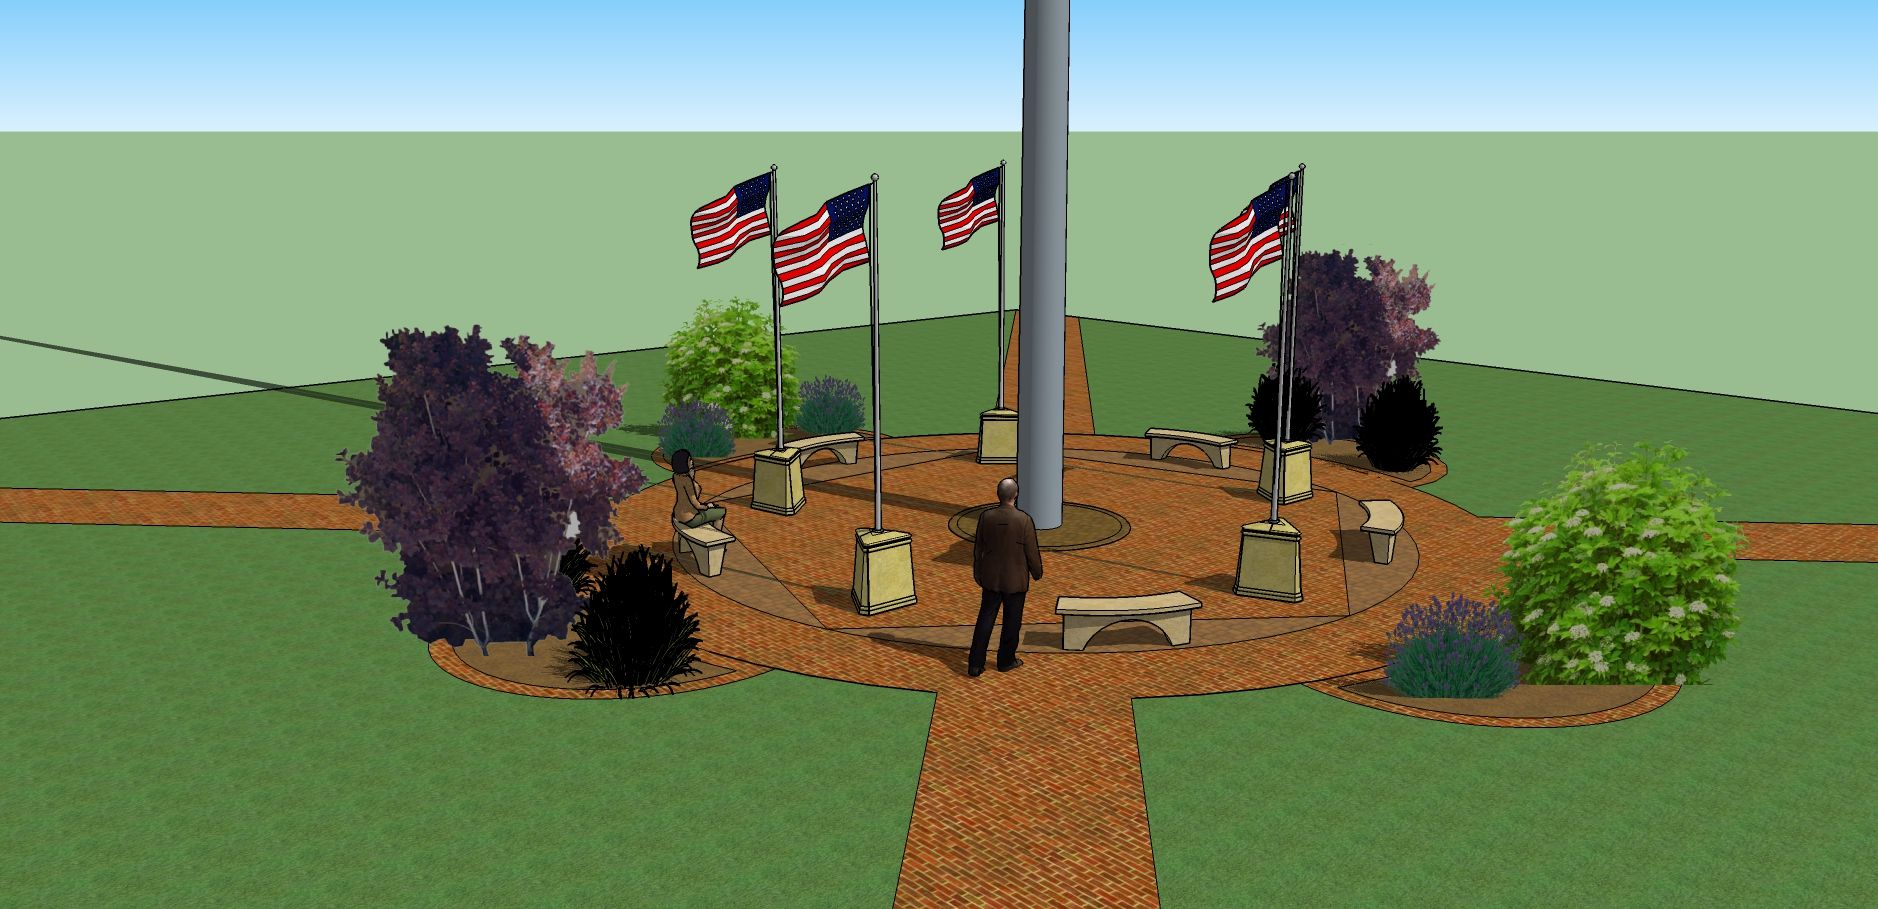 Veterans Monuments Flagpole Base Memorials | Big-Flagpole-Plus-5-Small-Flags-A